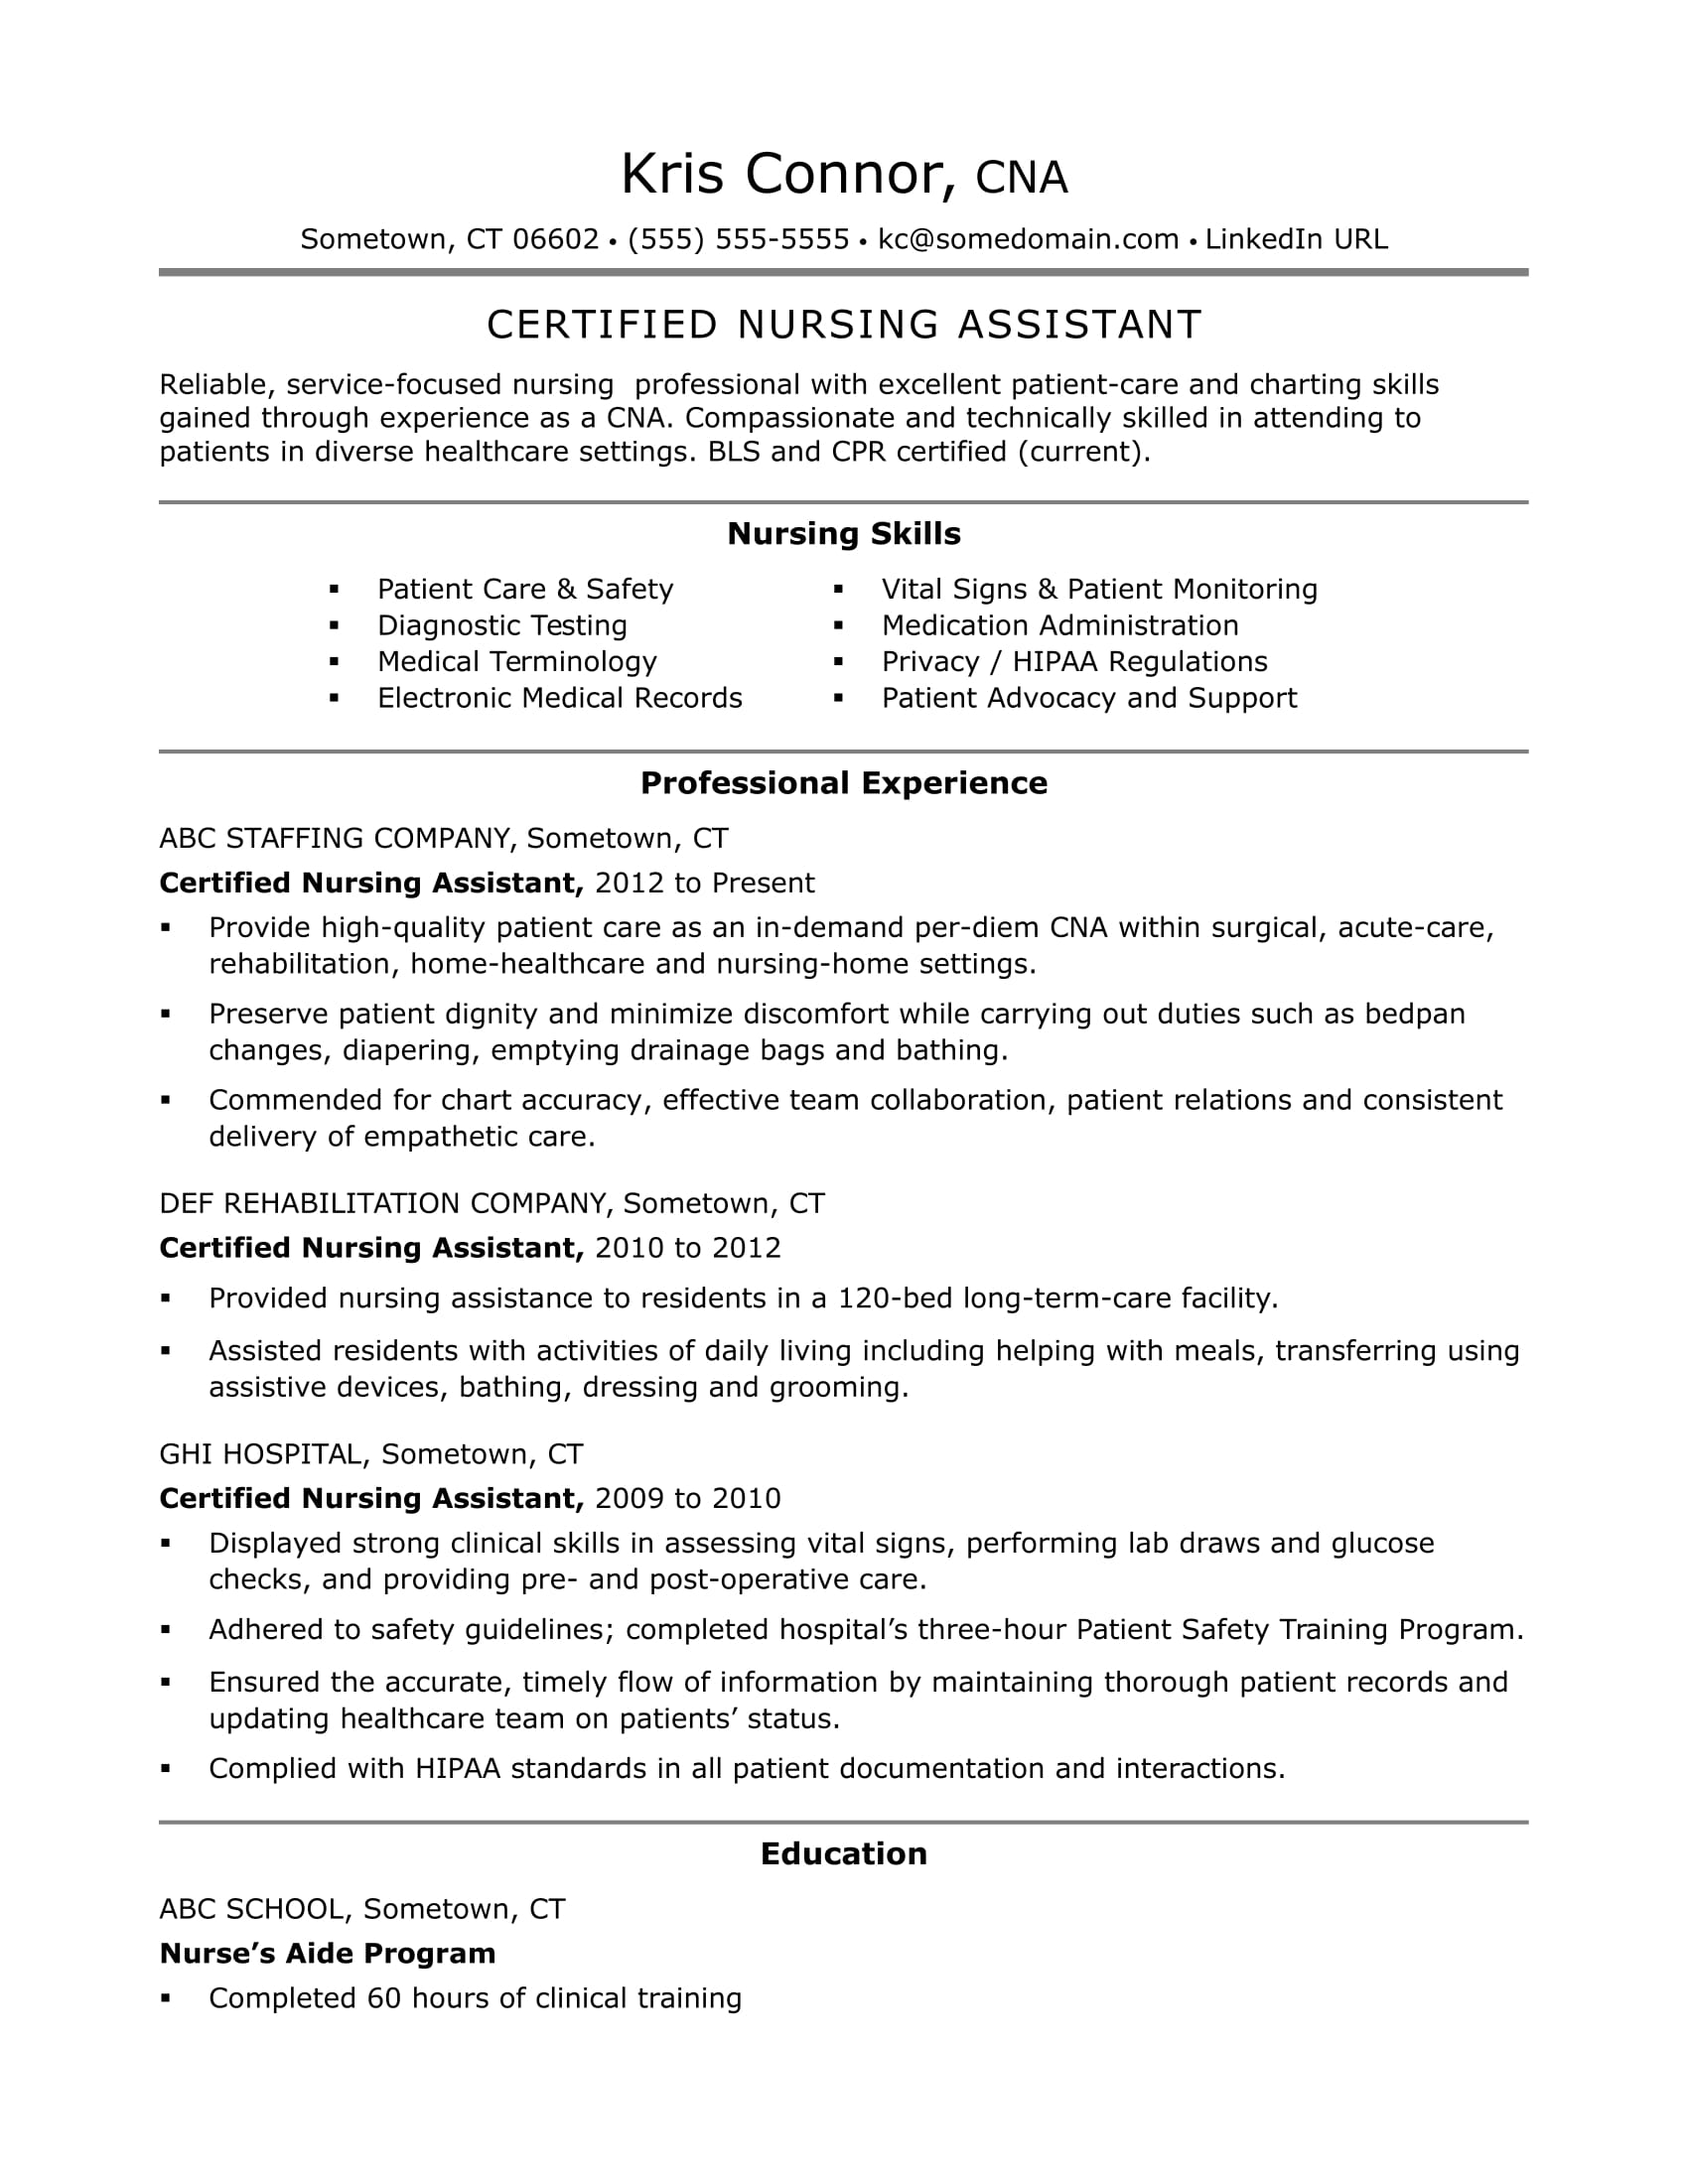 cna resume examples skills for cnas monster nursing assistant certified free simple Resume Nursing Assistant Resume Examples